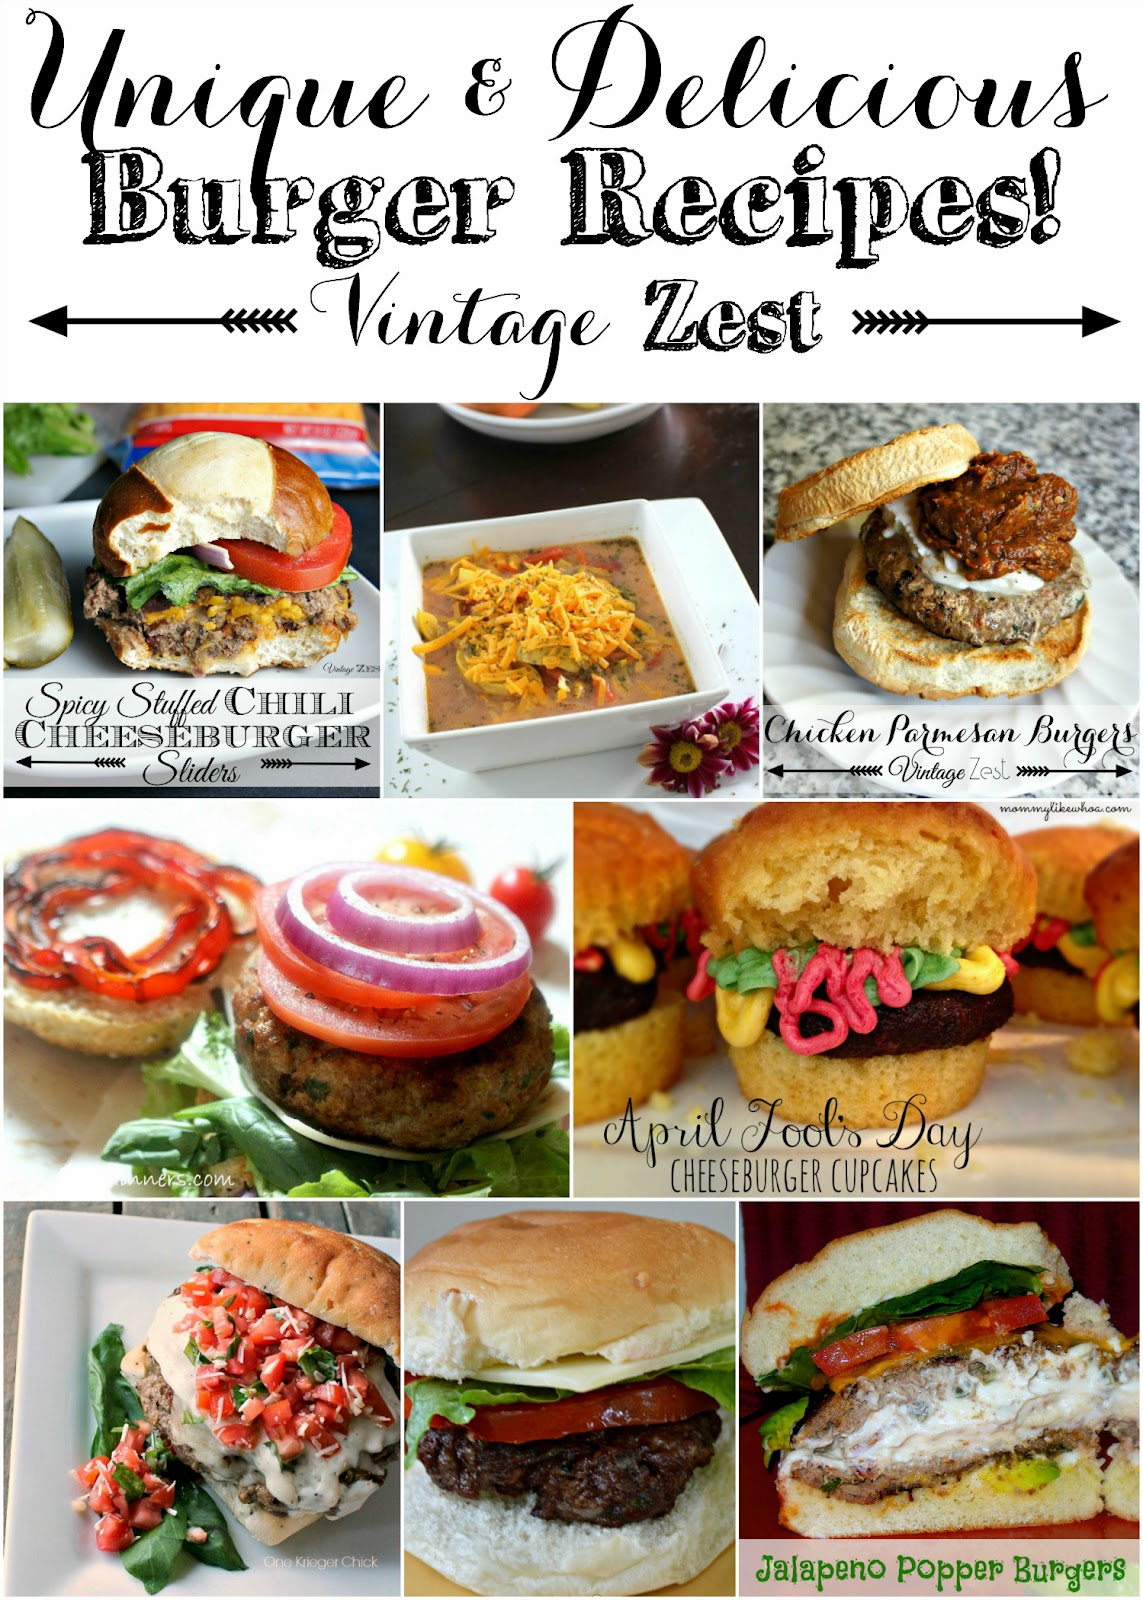 Unique and Delicious Burger Recipes!